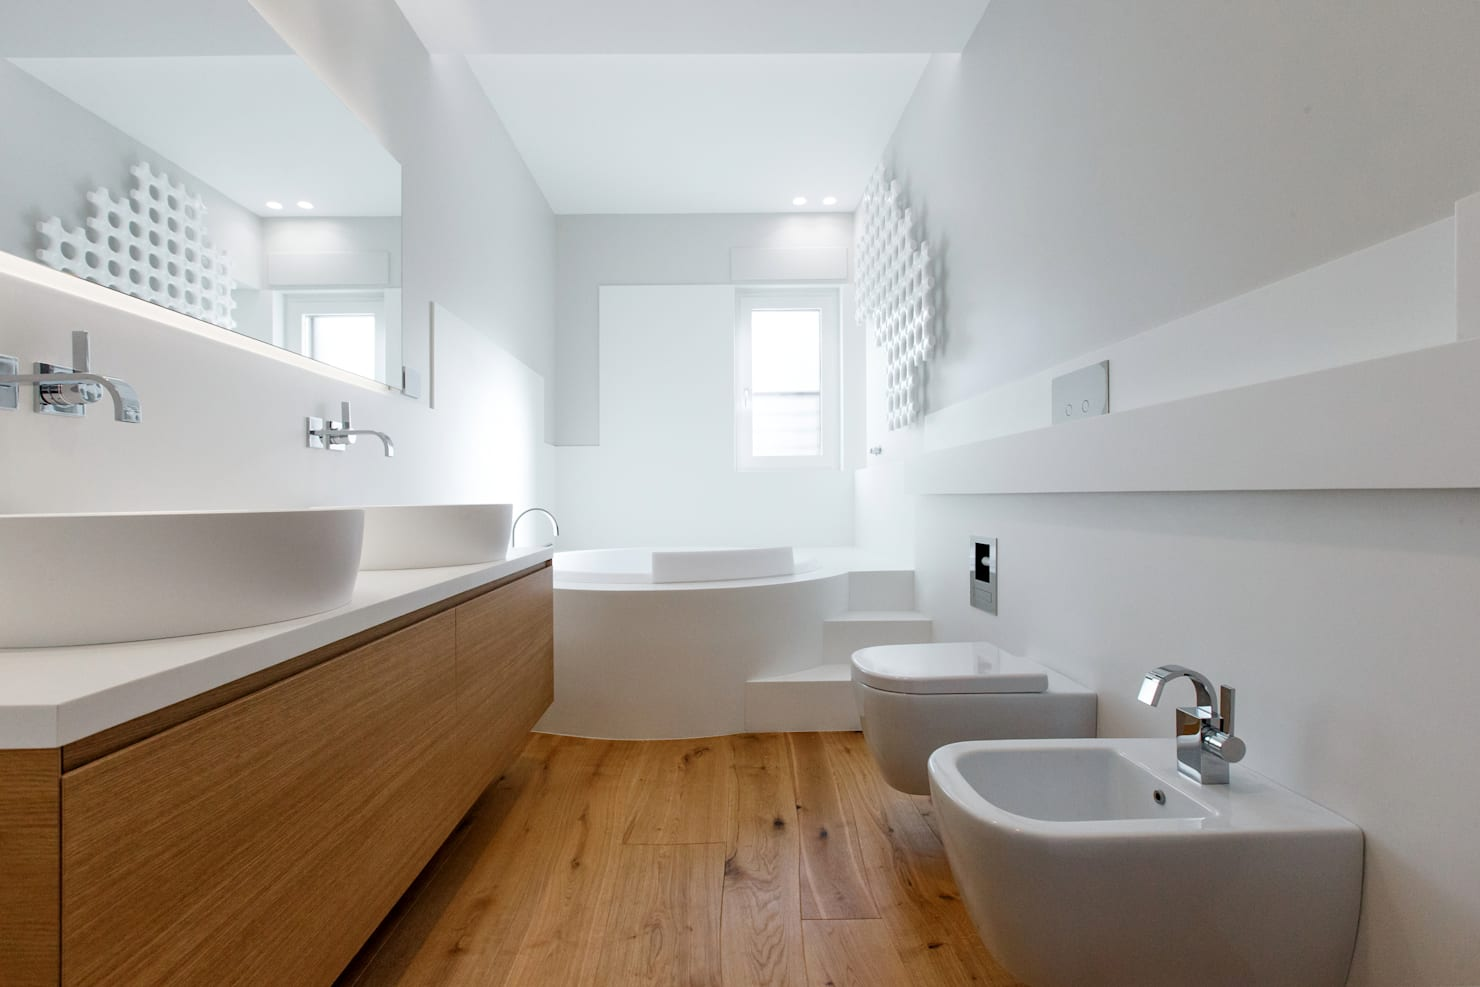 Bathroom design ideas from top interior architects